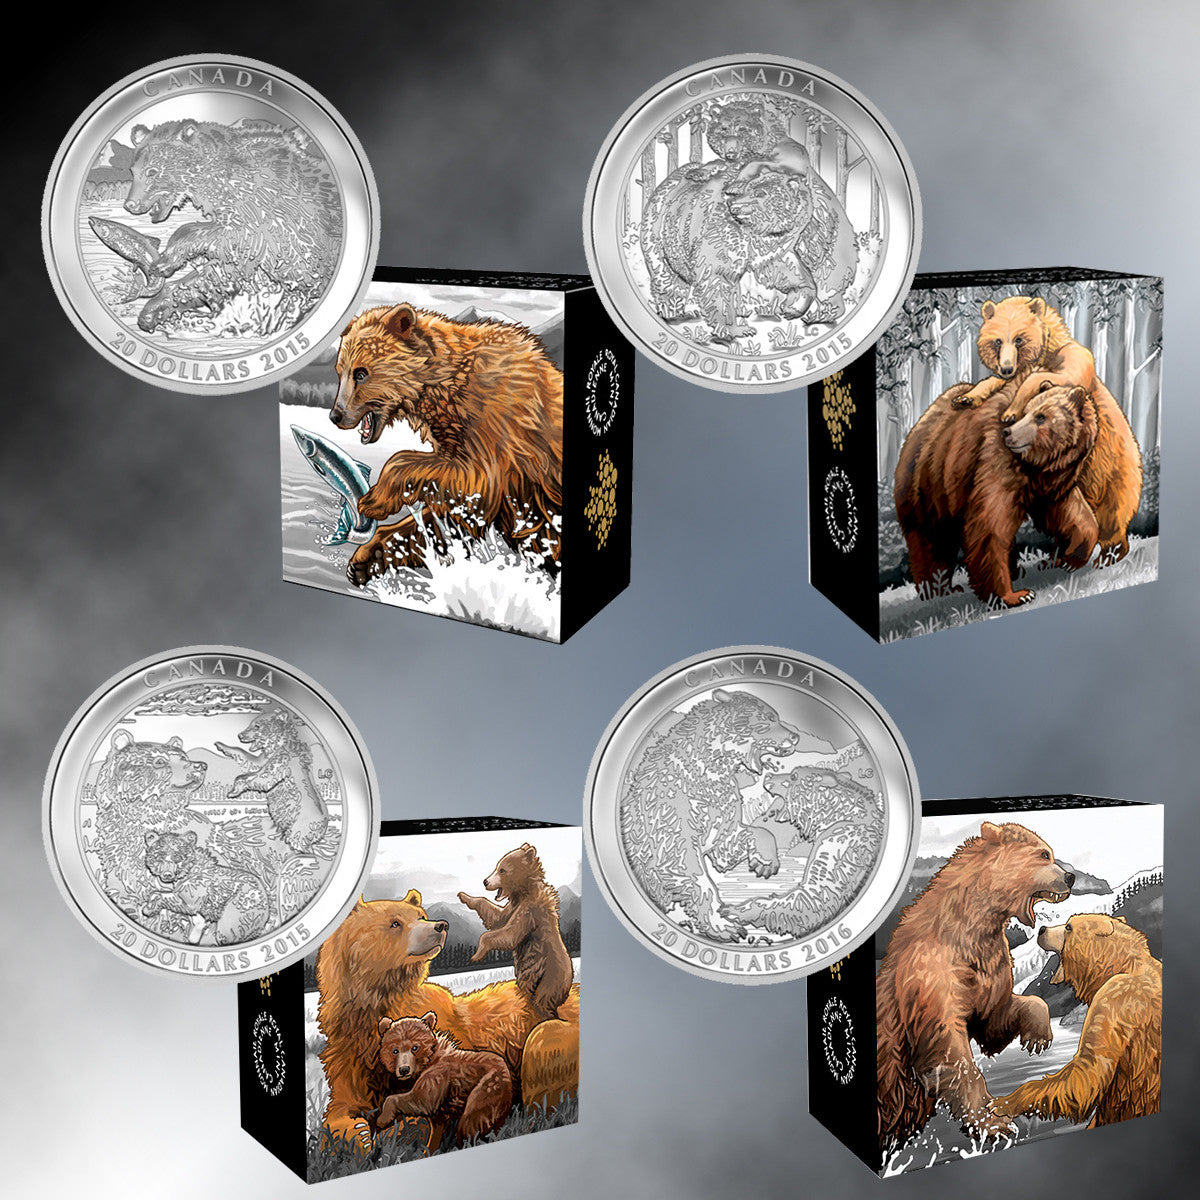 Set of 4 Canada $20 1oz Silver Grizzly Bear Coins